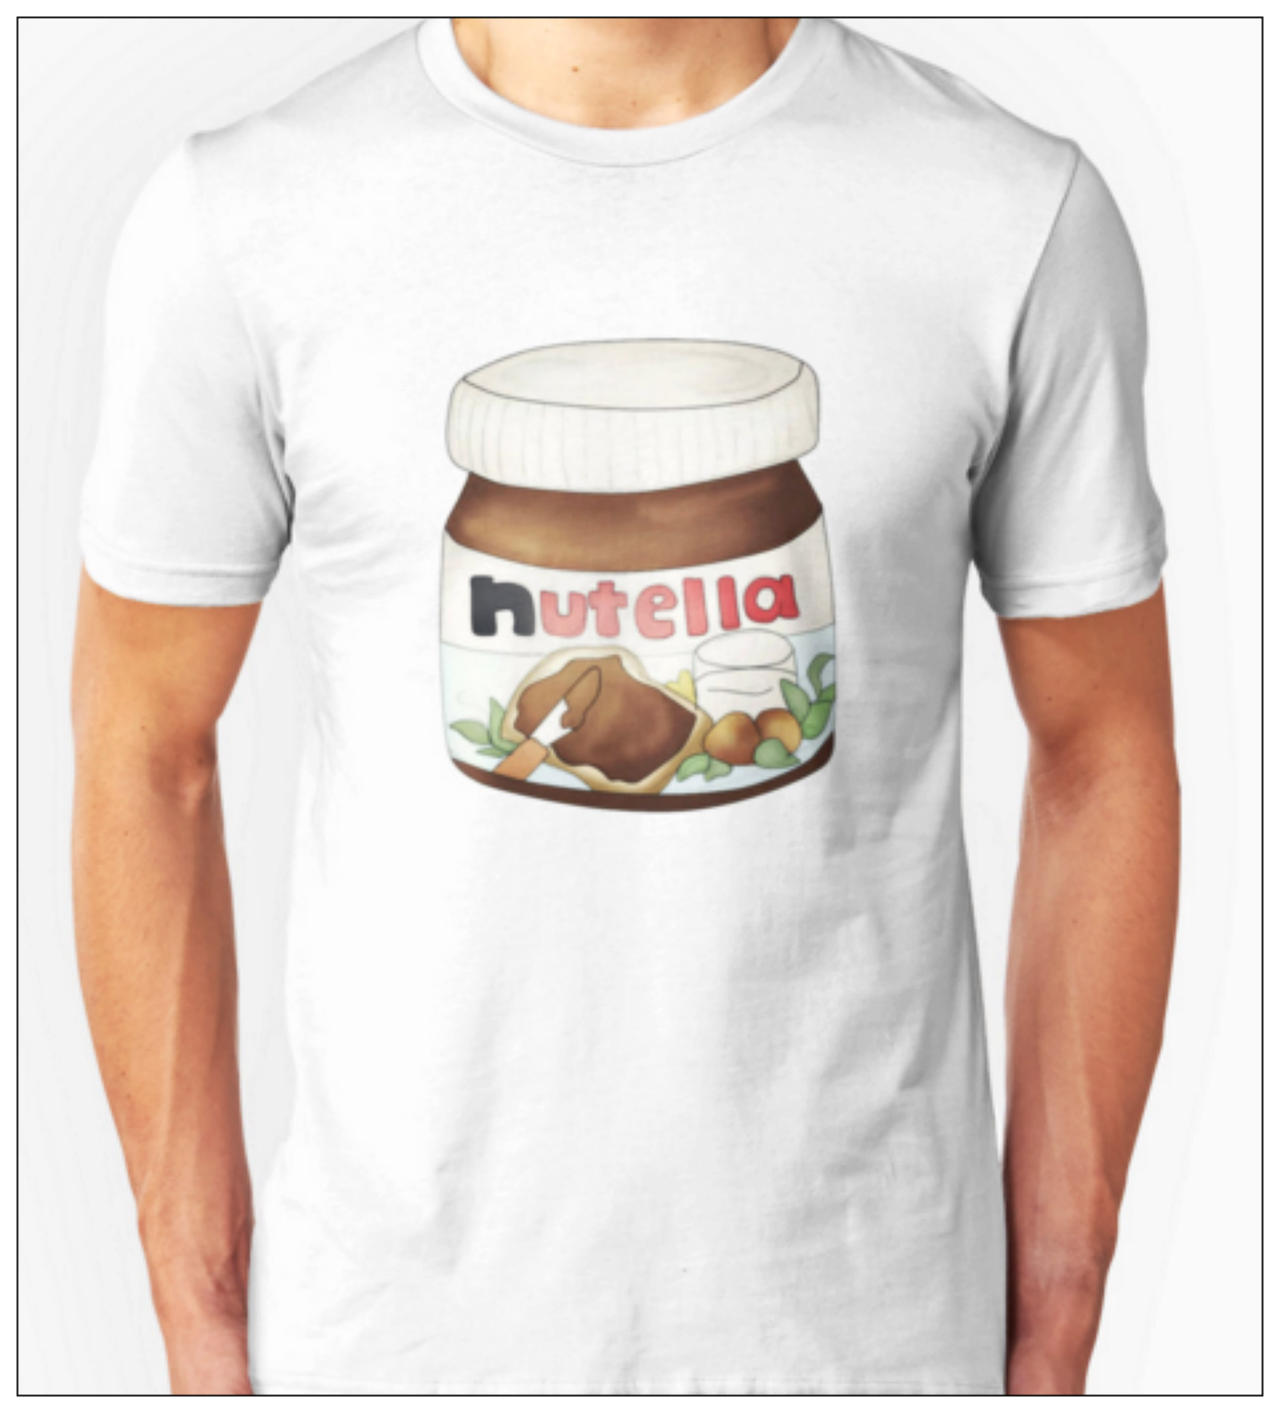 Nutella Love T-Shirt by SugarHit on DeviantArt